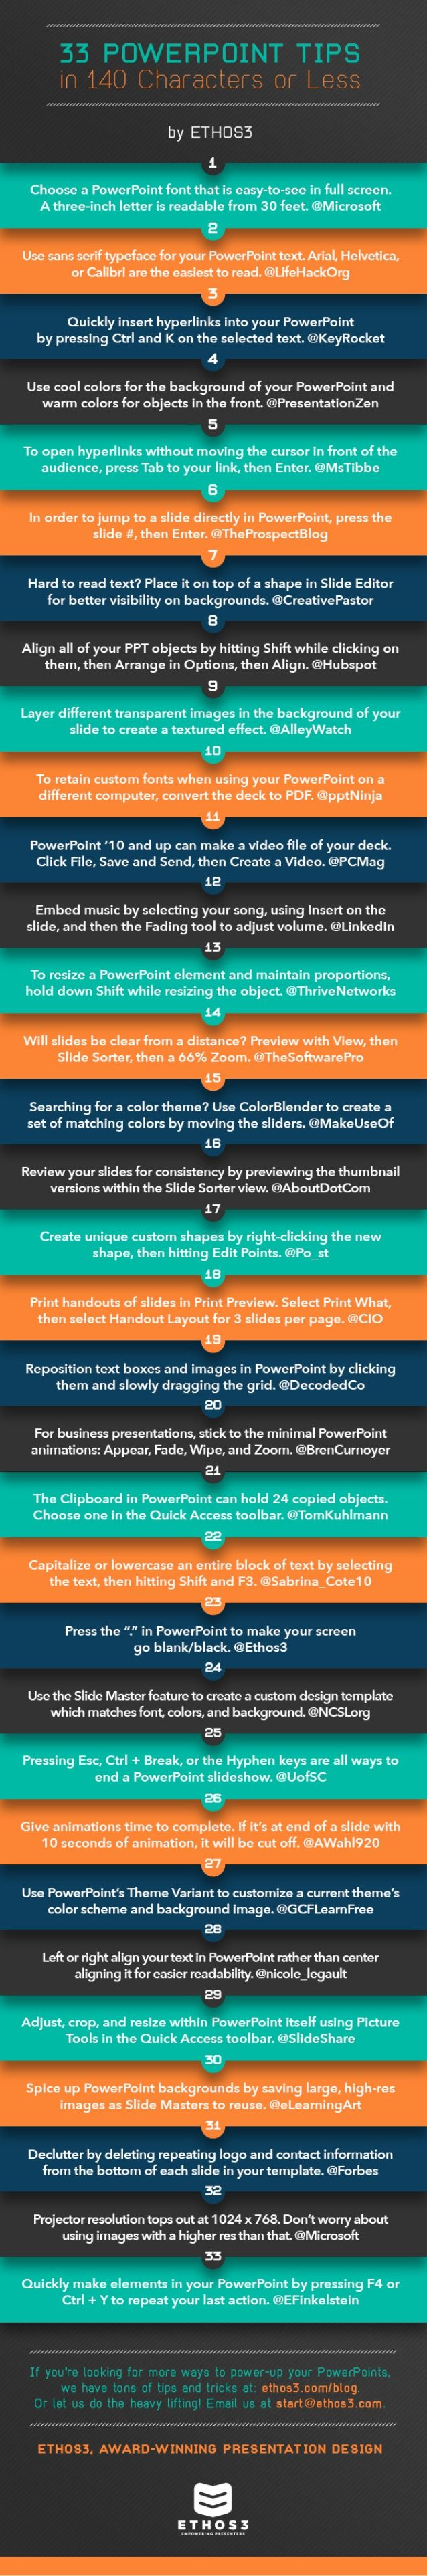 33 Power Point Tips, in 140 characters or less